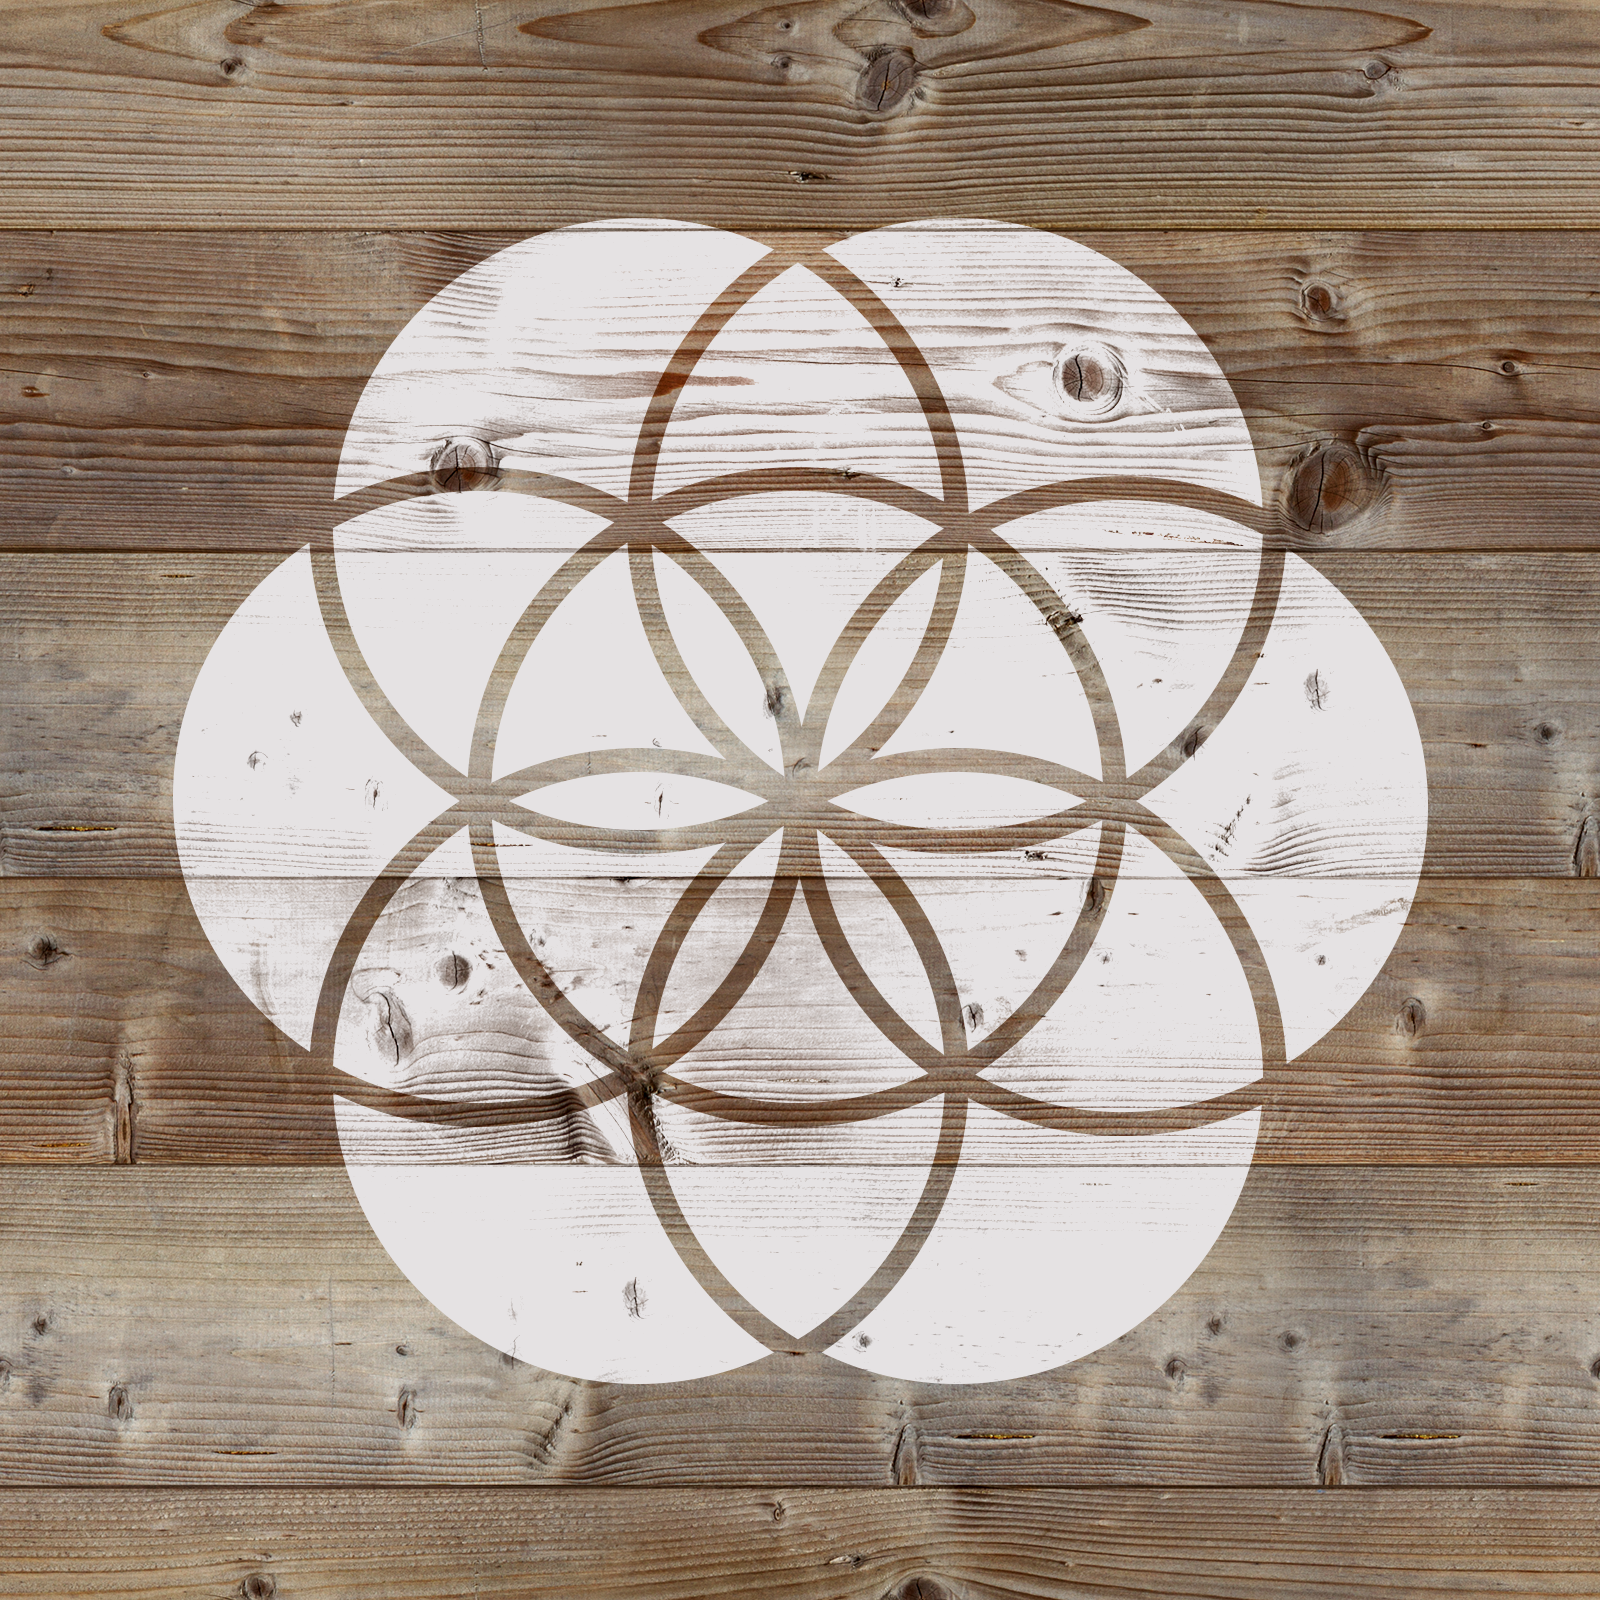 Seed of Life Stencil - Reusable Stencils of Seed of Life in Multiple Sizes